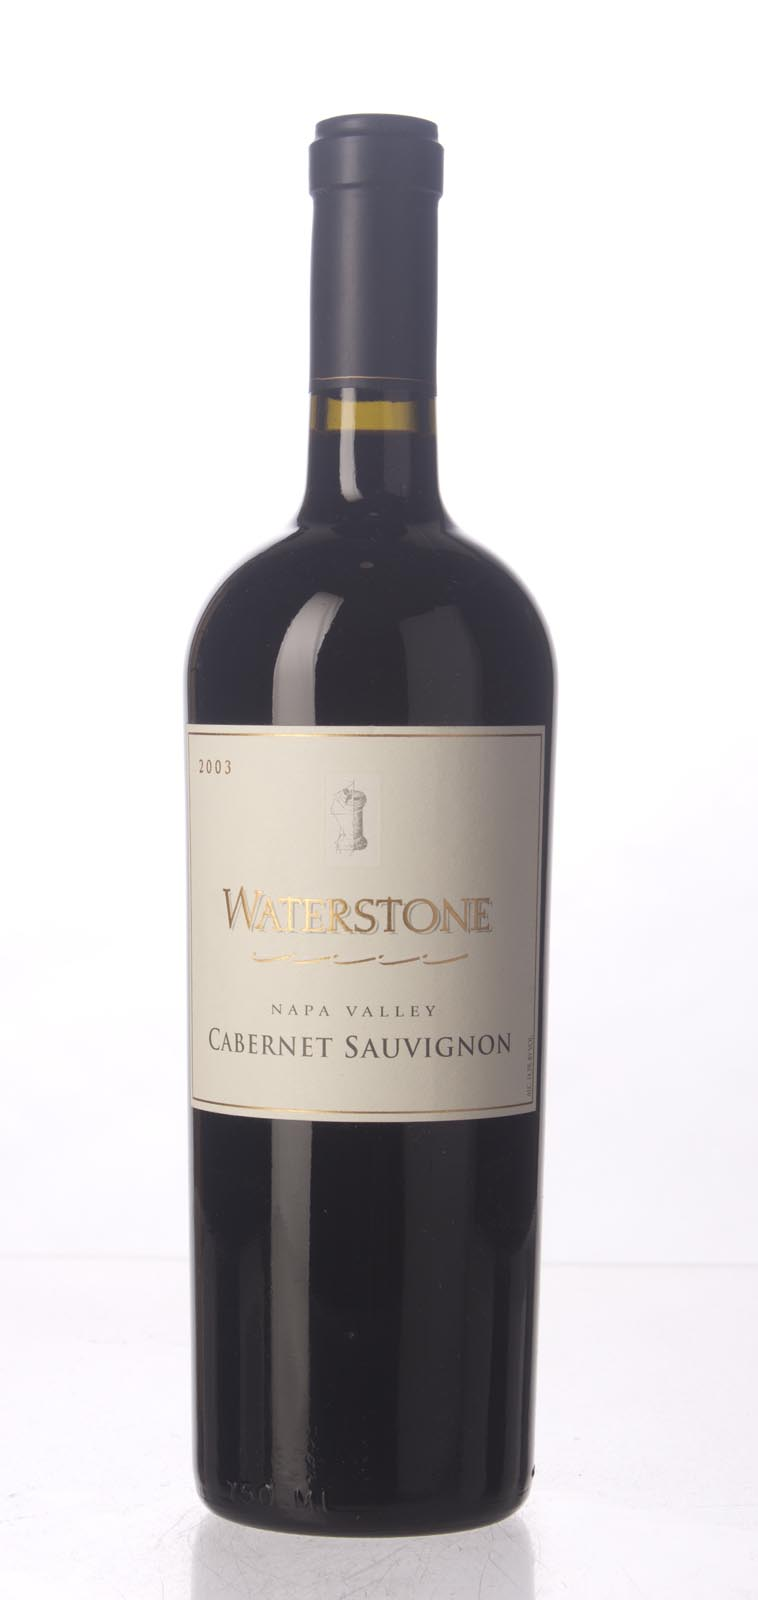 Waterstone Cabernet Sauvignon 2003, 750mL () from The BPW - Merchants of rare and fine wines.